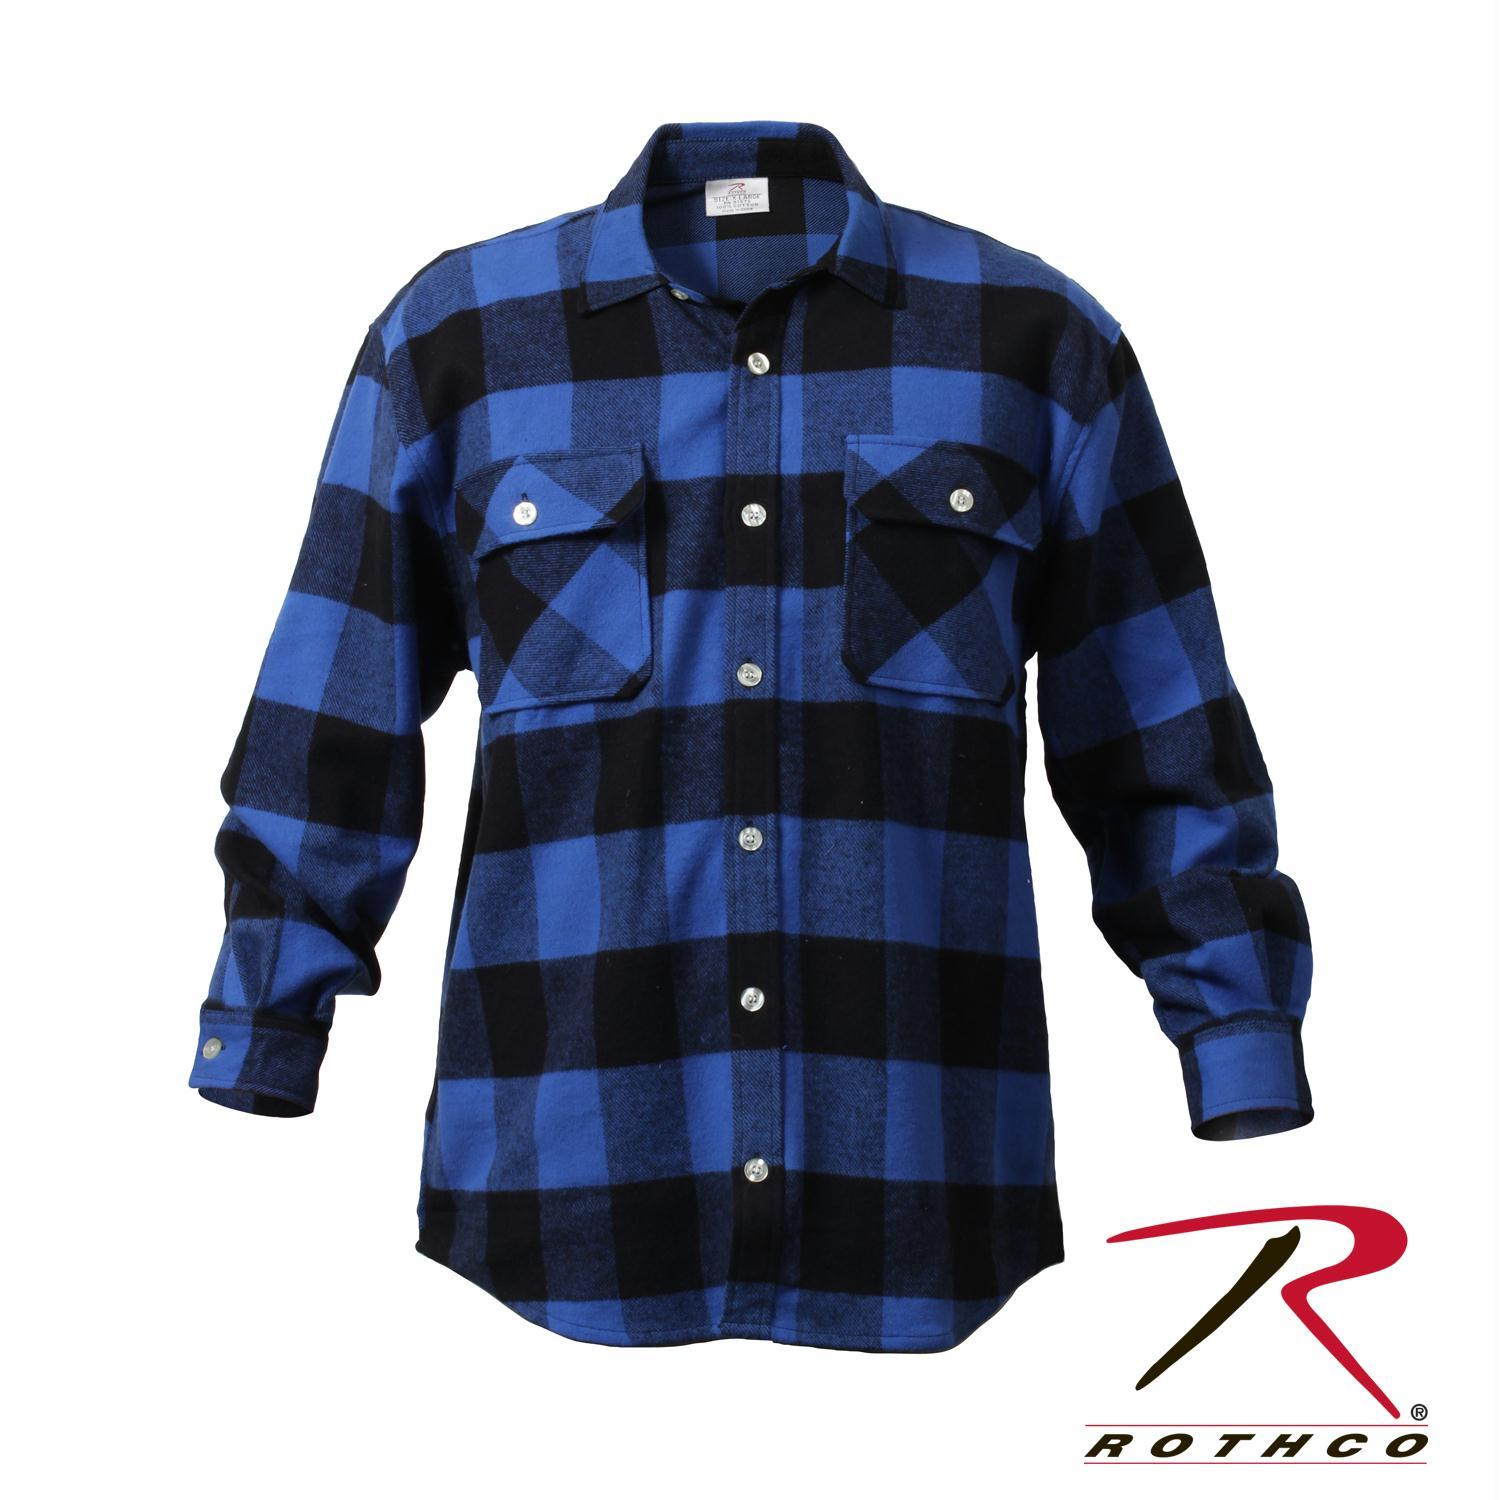 Rothco Extra Heavyweight Buffalo Plaid Flannel Shirts 5XL,Blue Plaid